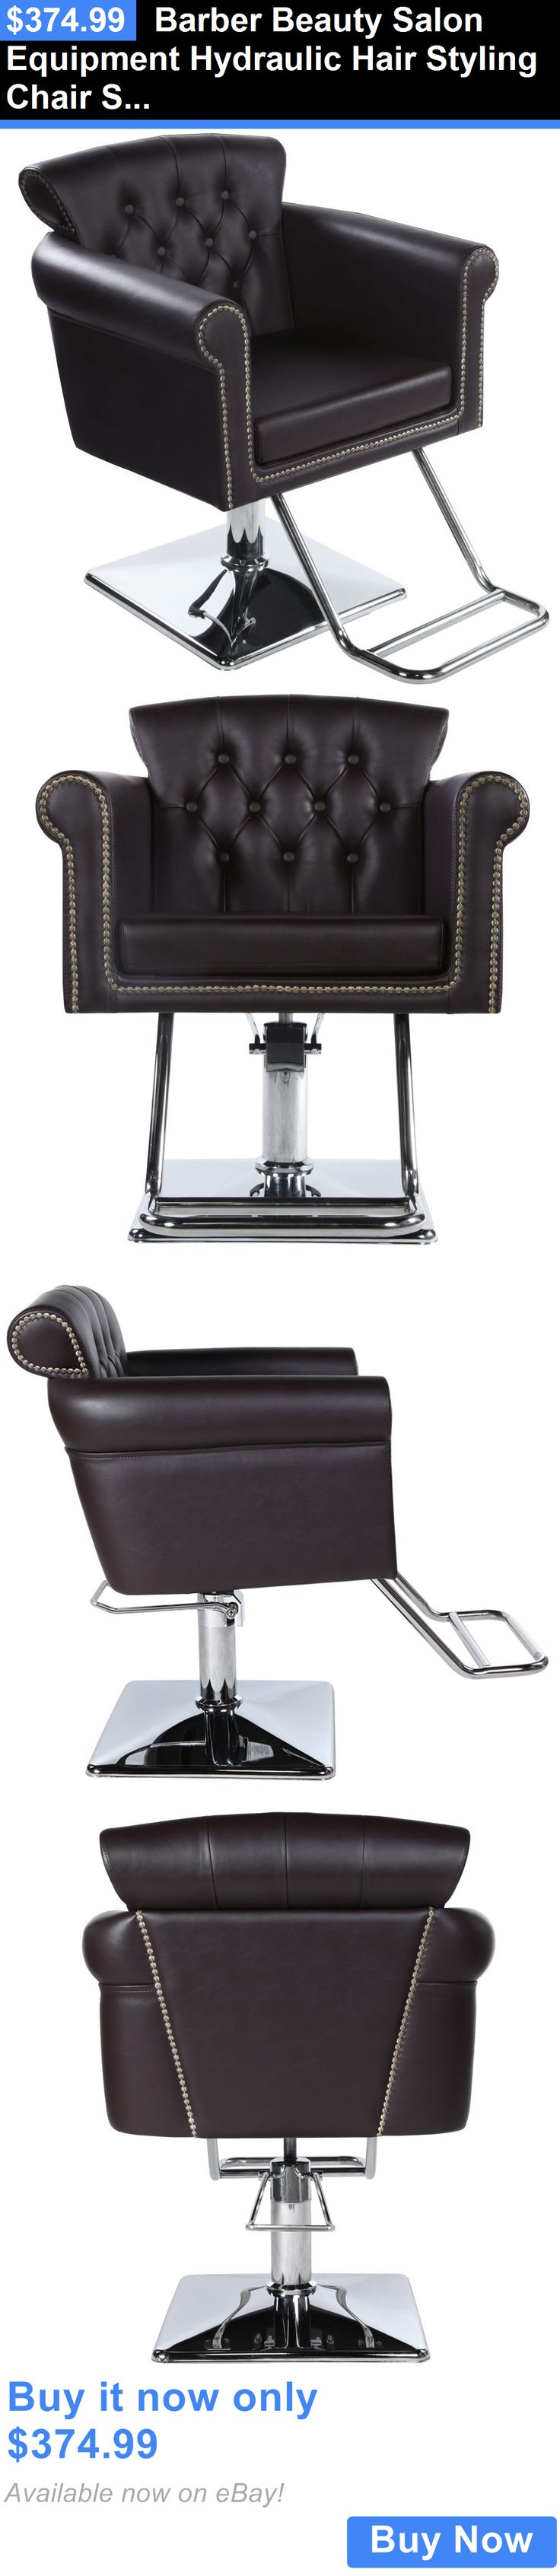 Best 25 beauty salon equipment ideas on pinterest salon for Ab salon equipment